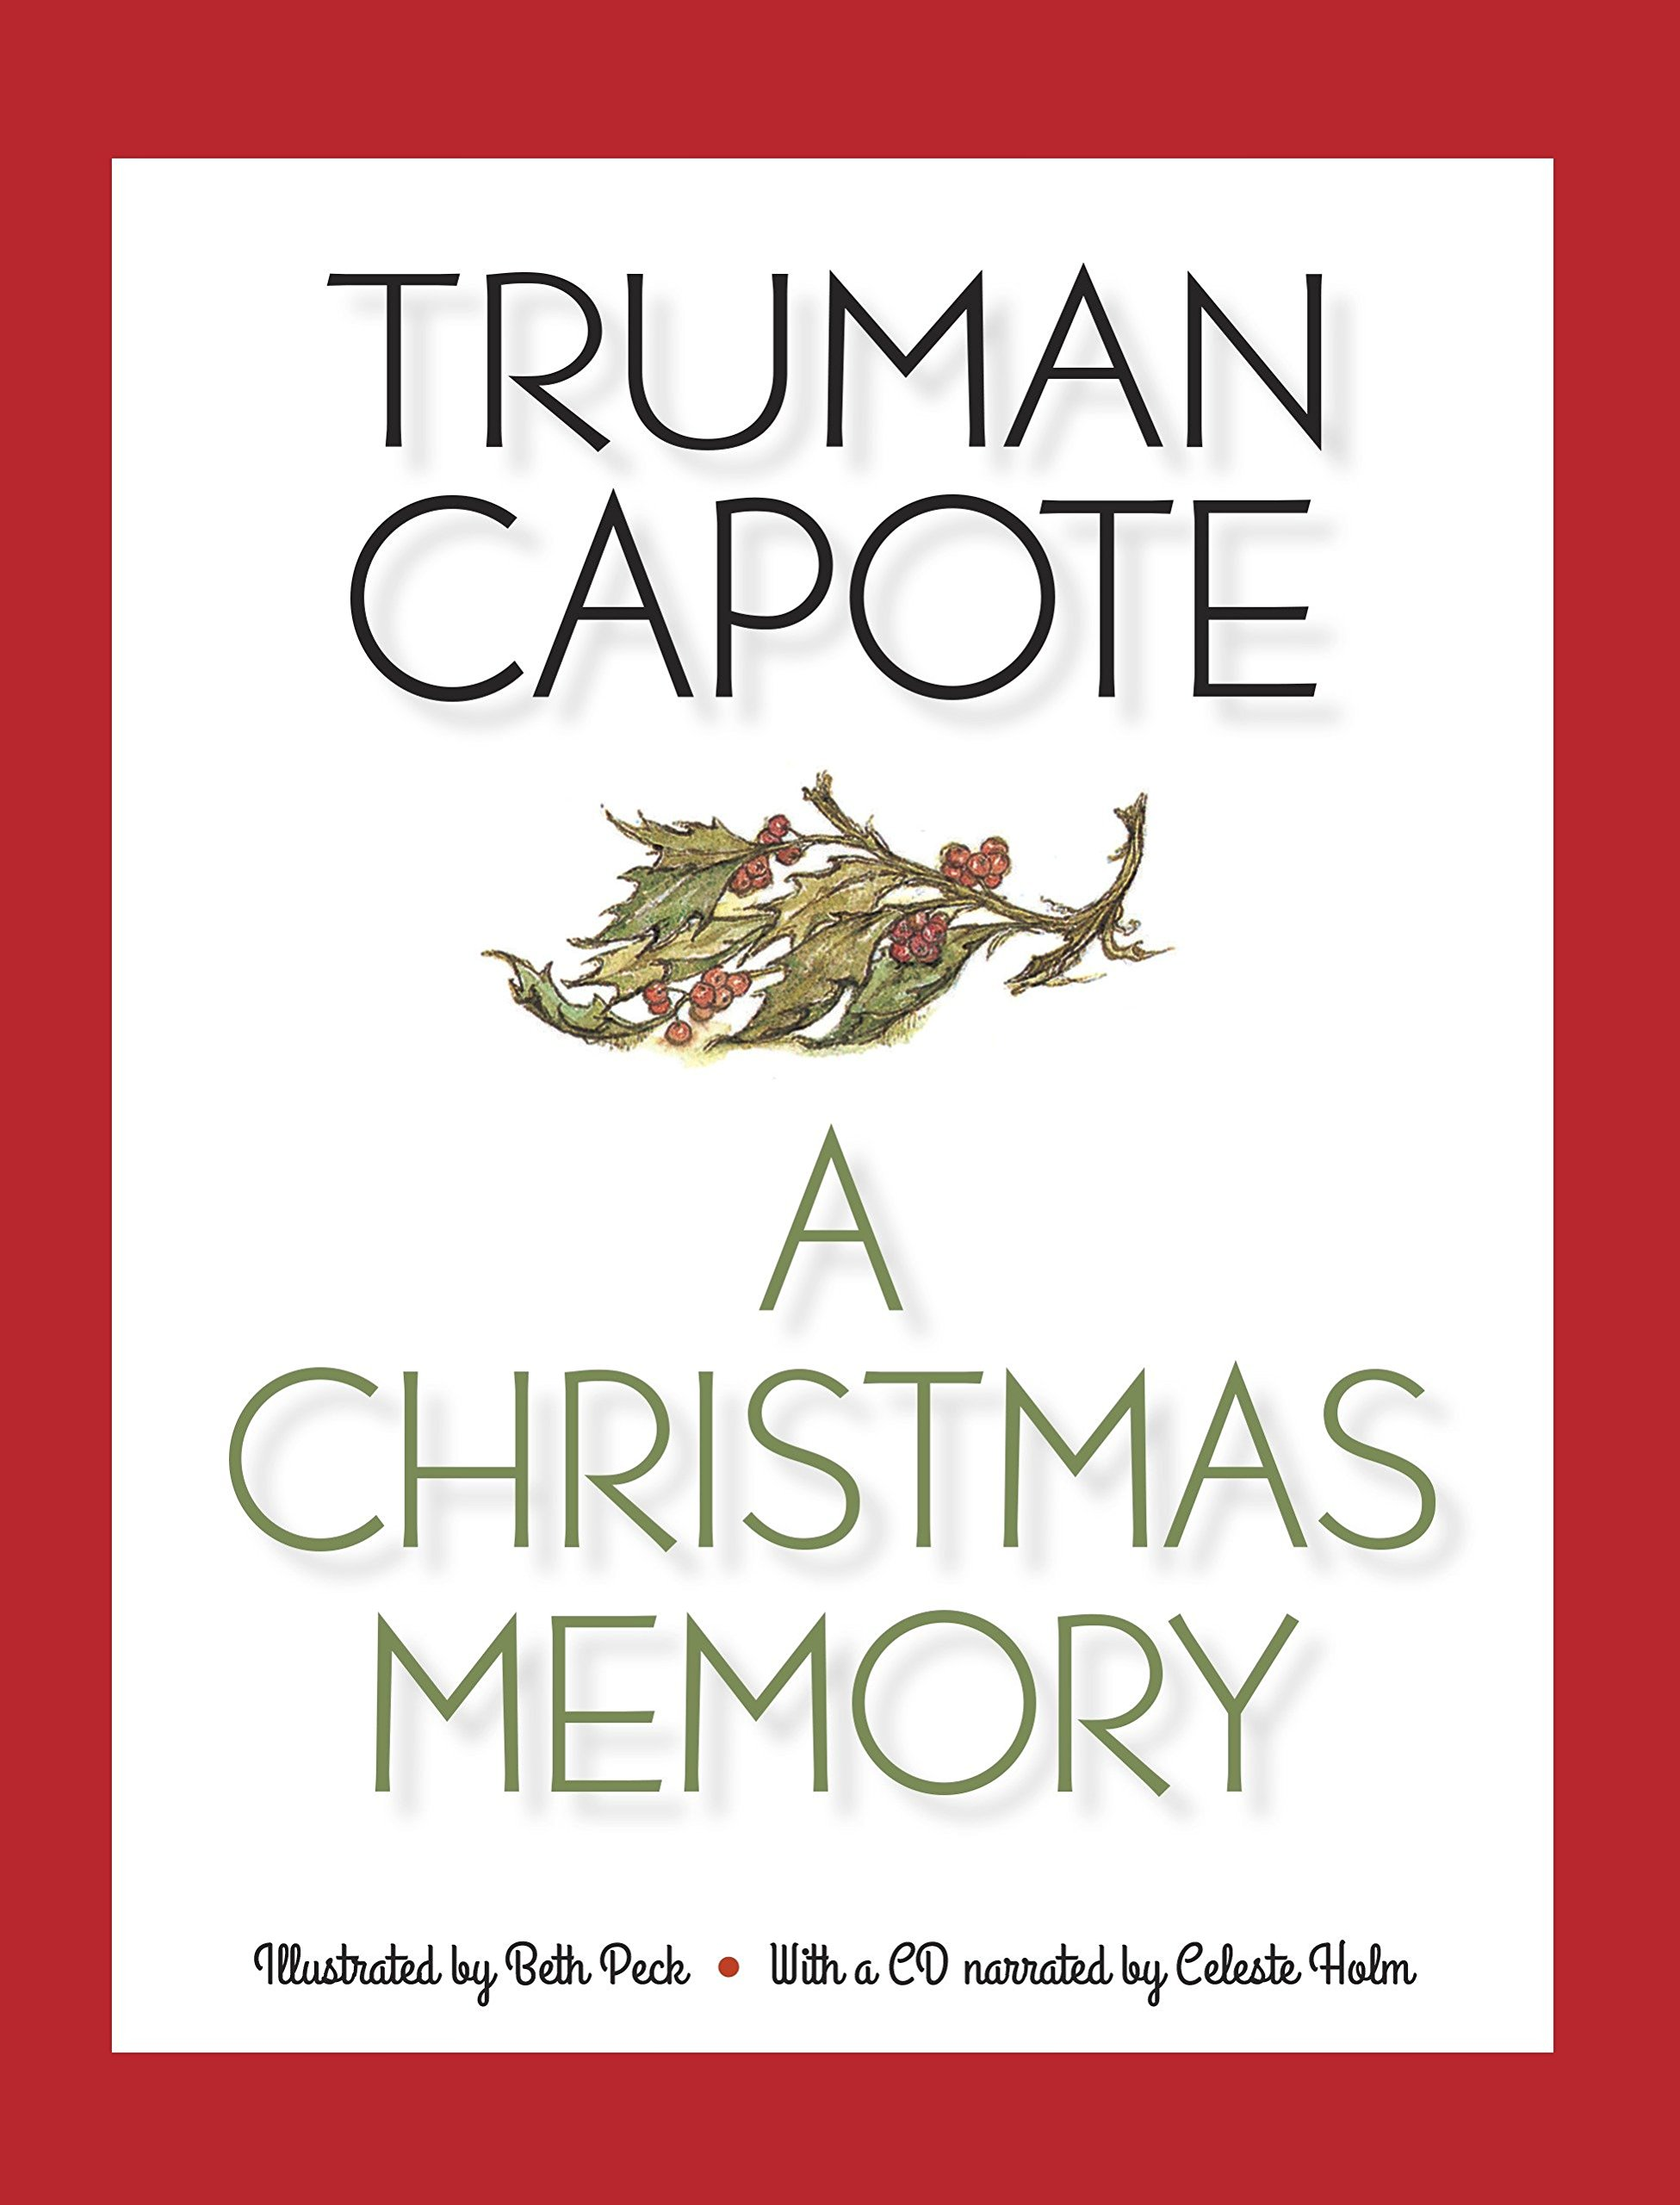 A Christmas Memory (Book & CD): Amazon.de: Truman Capote ...